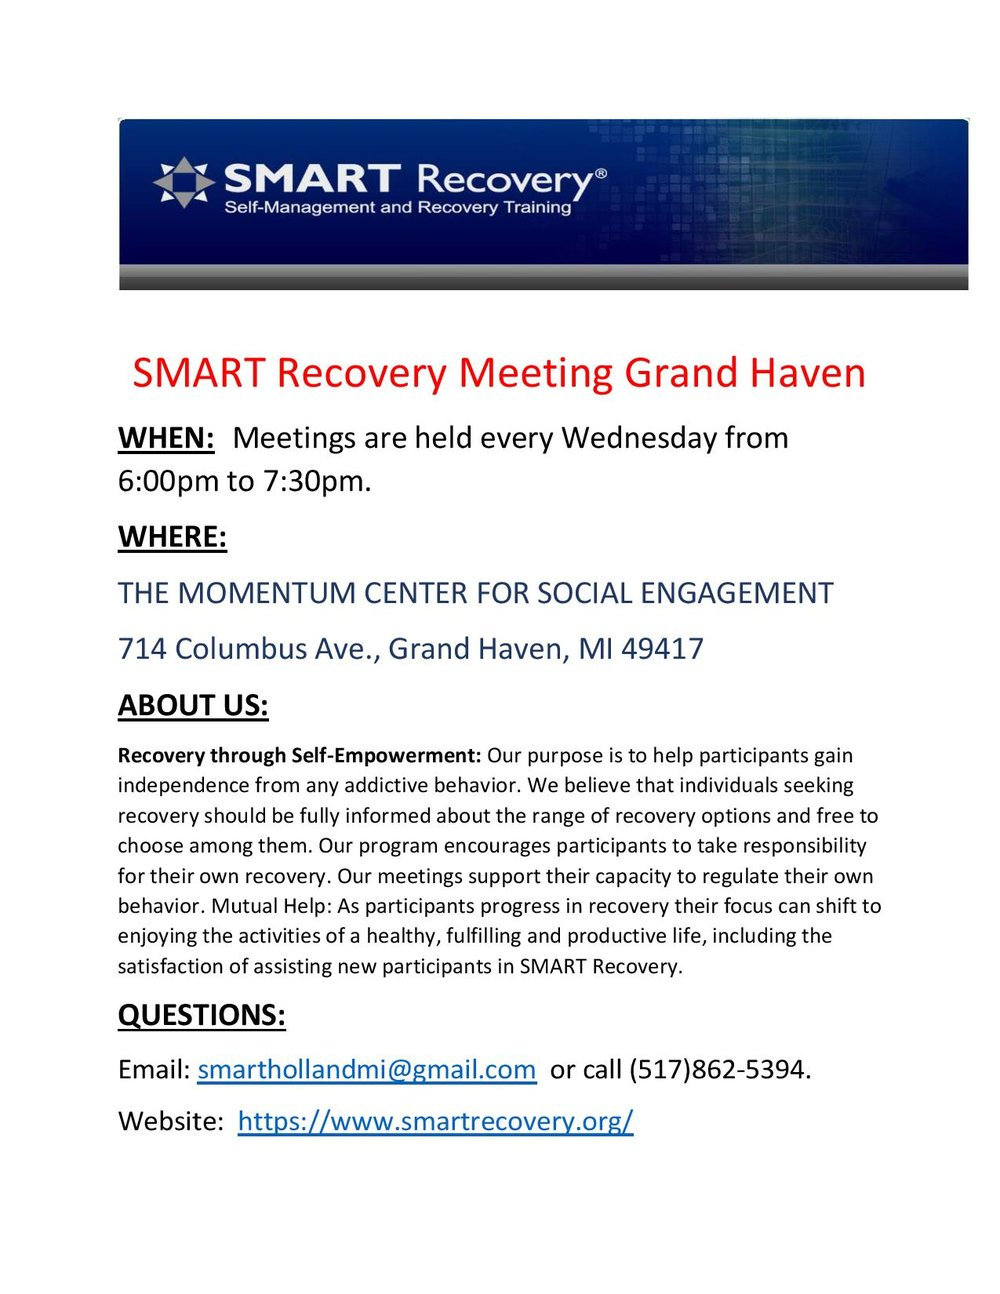 SMART Recovery Meeting Grand Haven Flyer (7)-page-001.jpg